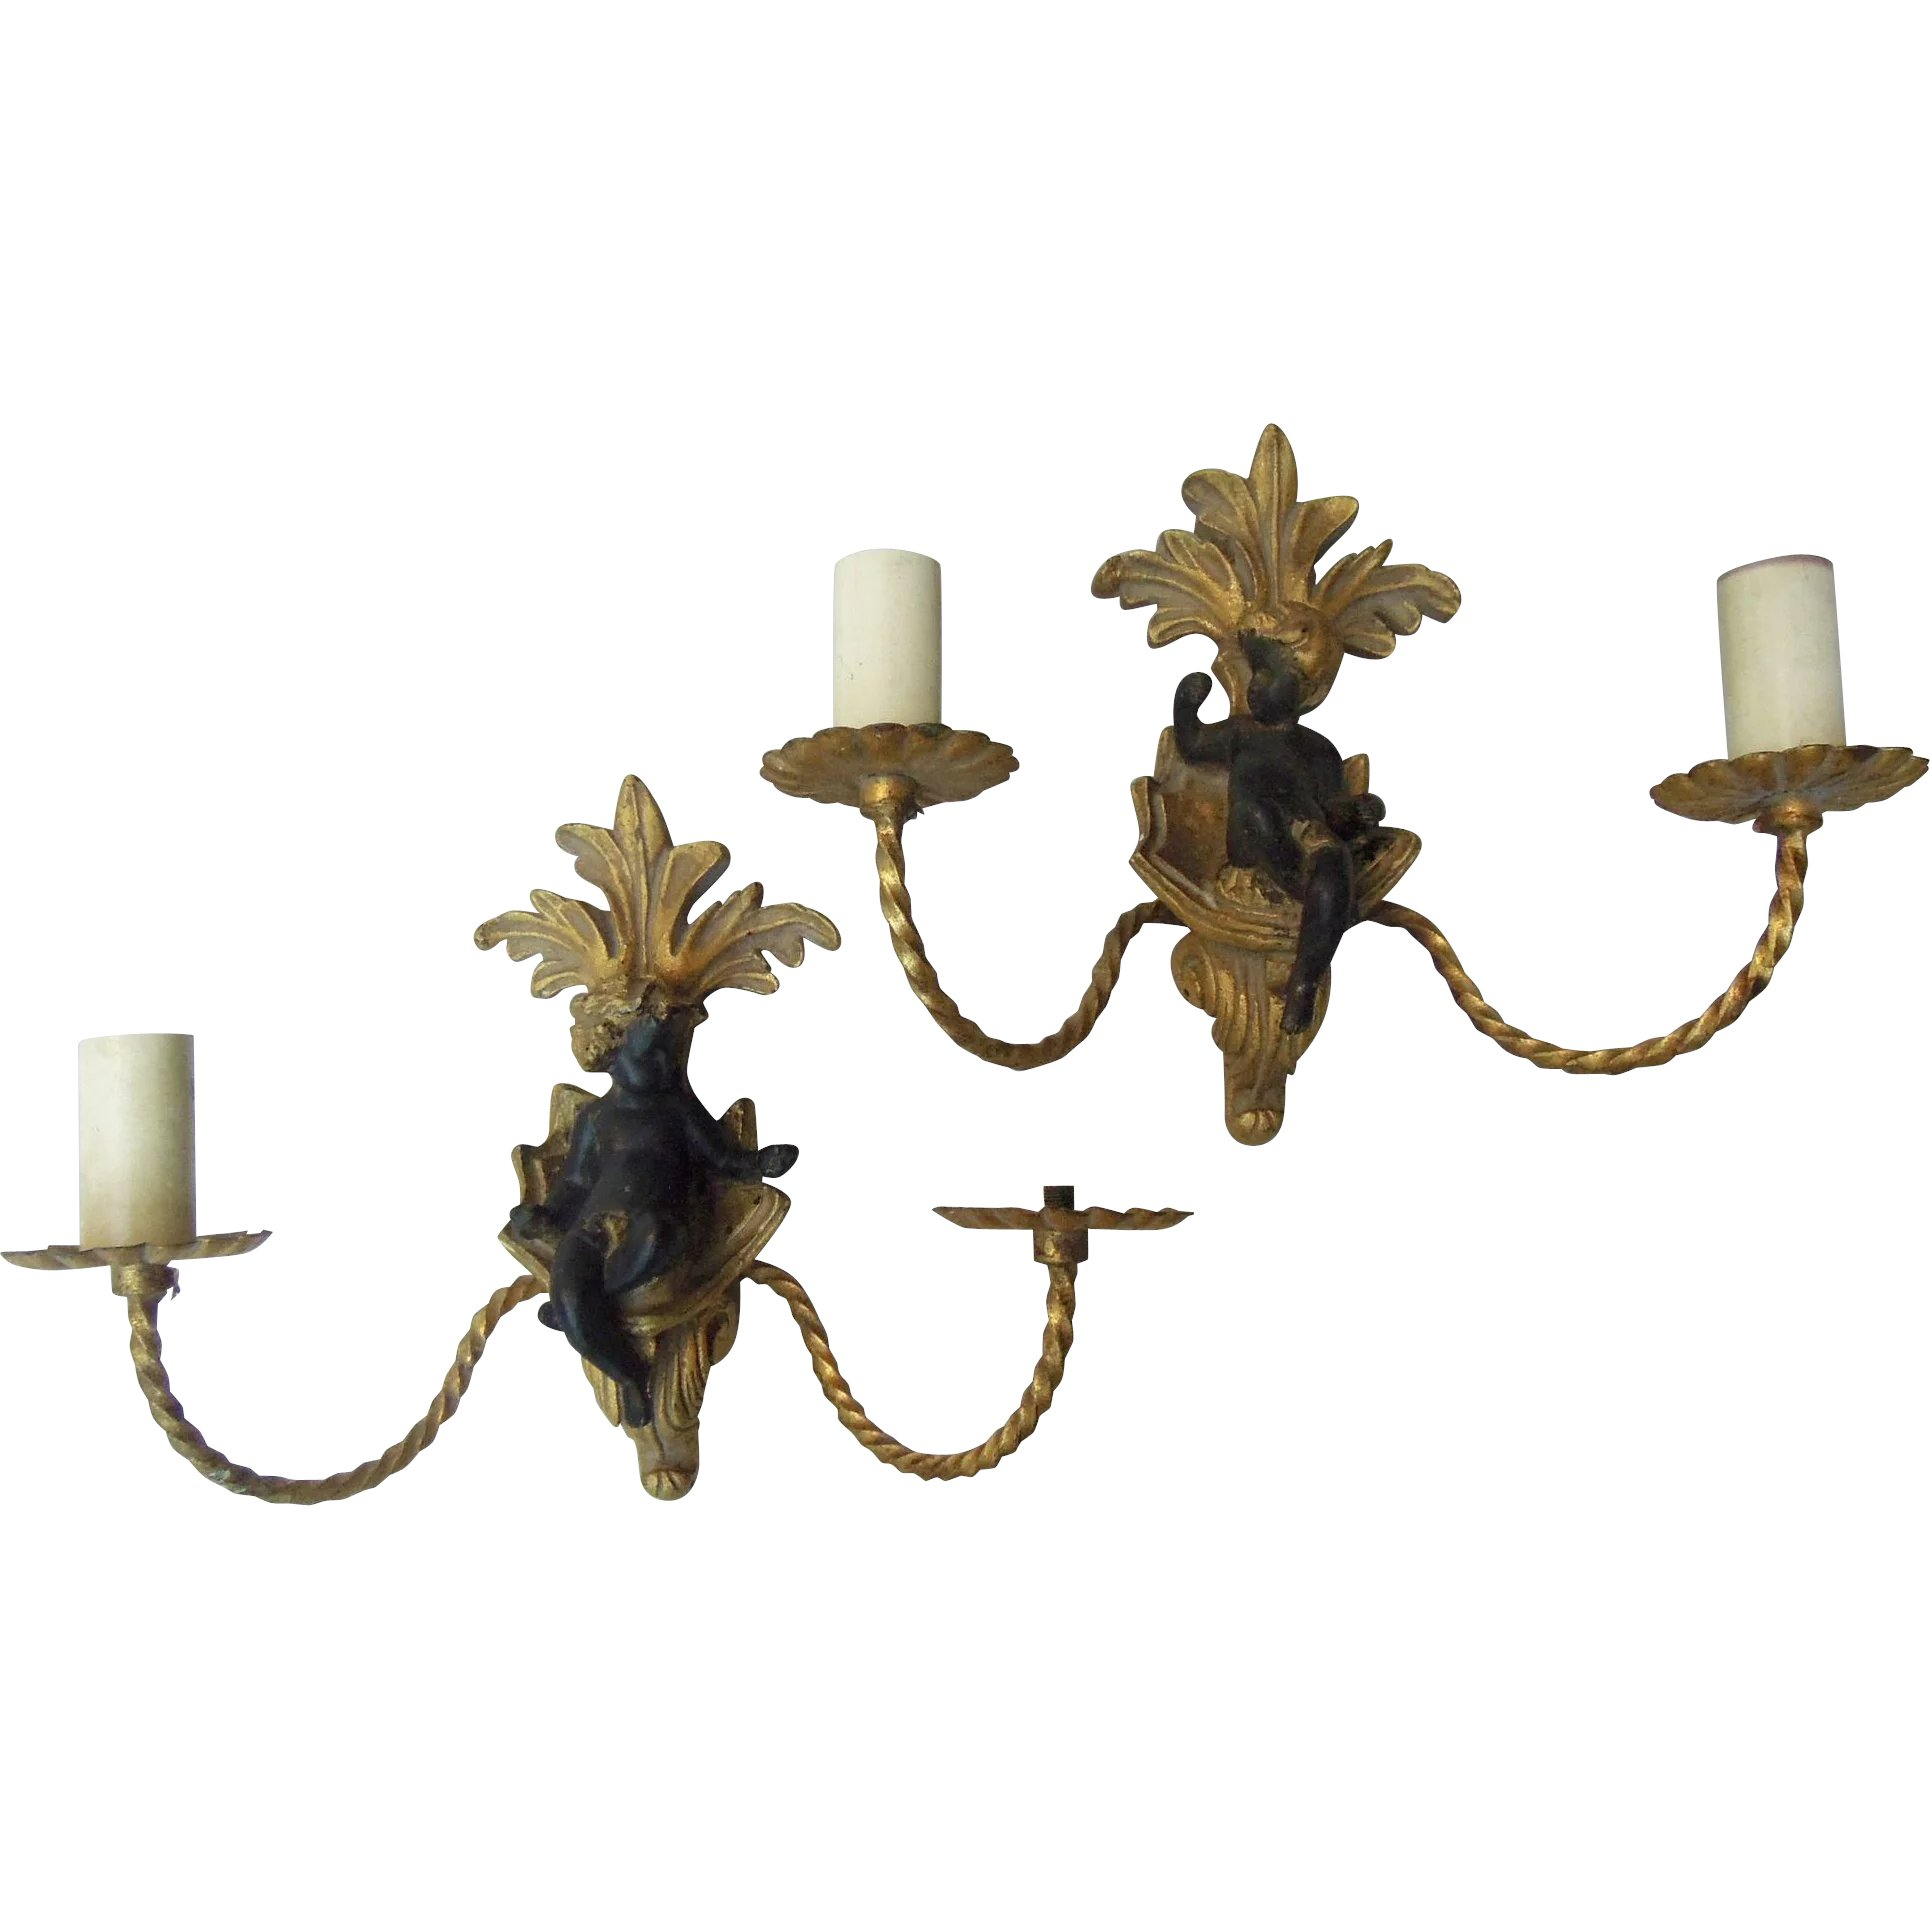 Pair of Vintage Cherub Italian Sconces with Gilt  The Uncommon Market | Ruby Lane  sc 1 st  Ruby Lane & Pair of Vintage Cherub Italian Sconces with Gilt : The Uncommon ...